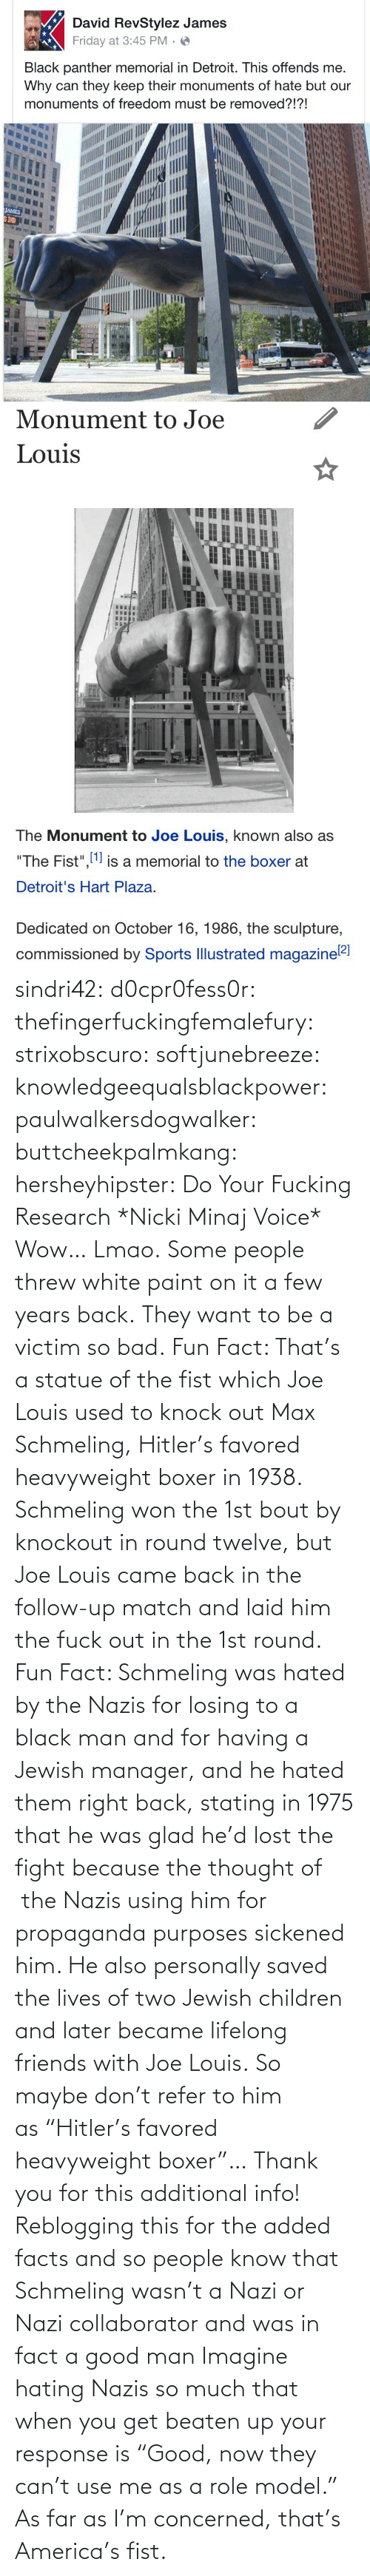 "because: sindri42:  d0cpr0fess0r:  thefingerfuckingfemalefury:  strixobscuro:  softjunebreeze:  knowledgeequalsblackpower:  paulwalkersdogwalker:   buttcheekpalmkang:   hersheyhipster:  Do Your Fucking Research *Nicki Minaj Voice*    Wow… Lmao.   Some people threw white paint on it a few years back.   They want to be a victim so bad.  Fun Fact: That's a statue of the fist which Joe Louis used to knock out Max Schmeling, Hitler's favored heavyweight boxer in 1938. Schmeling won the 1st bout by knockout in round twelve, but Joe Louis came back in the follow-up match and laid him the fuck out in the 1st round.  Fun Fact: Schmeling was hated by the Nazis for losing to a black man and for having a Jewish manager, and he hated them right back, stating in 1975 that he was glad he'd lost the fight because the thought of  the Nazis using him for propaganda purposes sickened him. He also personally saved the lives of two Jewish children and later became lifelong friends with Joe Louis. So maybe don't refer to him as ""Hitler's favored heavyweight boxer""…  Thank you for this additional info! Reblogging this for the added facts and so people know that Schmeling wasn't a Nazi or Nazi collaborator and was in fact a good man   Imagine hating Nazis so much that when you get beaten up your response is ""Good, now they can't use me as a role model.""  As far as I'm concerned, that's America's fist."